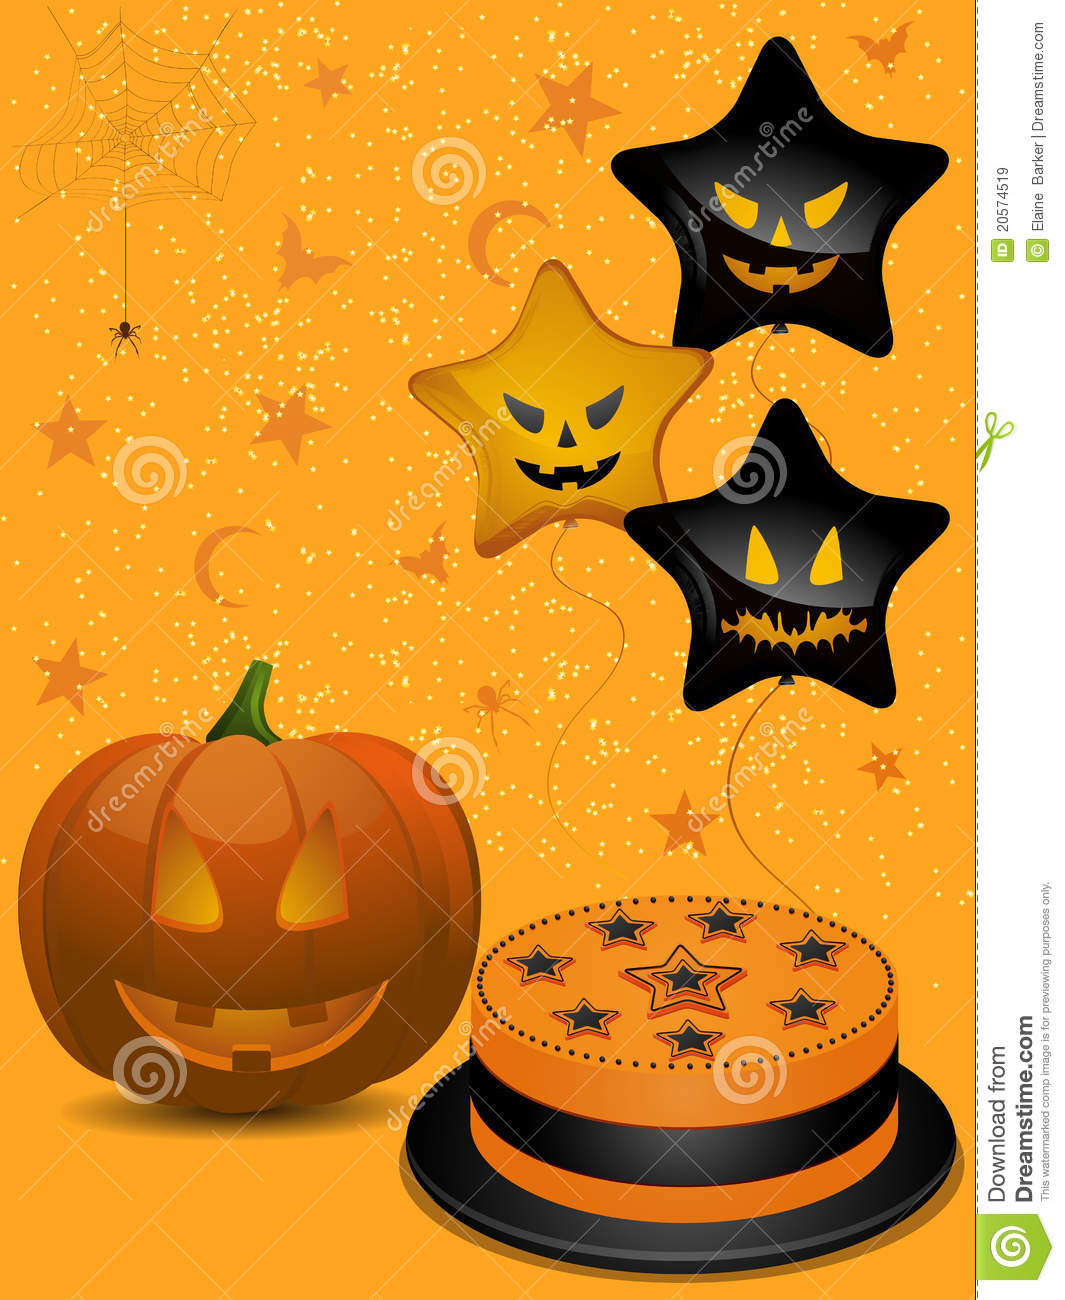 Halloween Party Background Royalty Free Stock Images - Image: 20574519